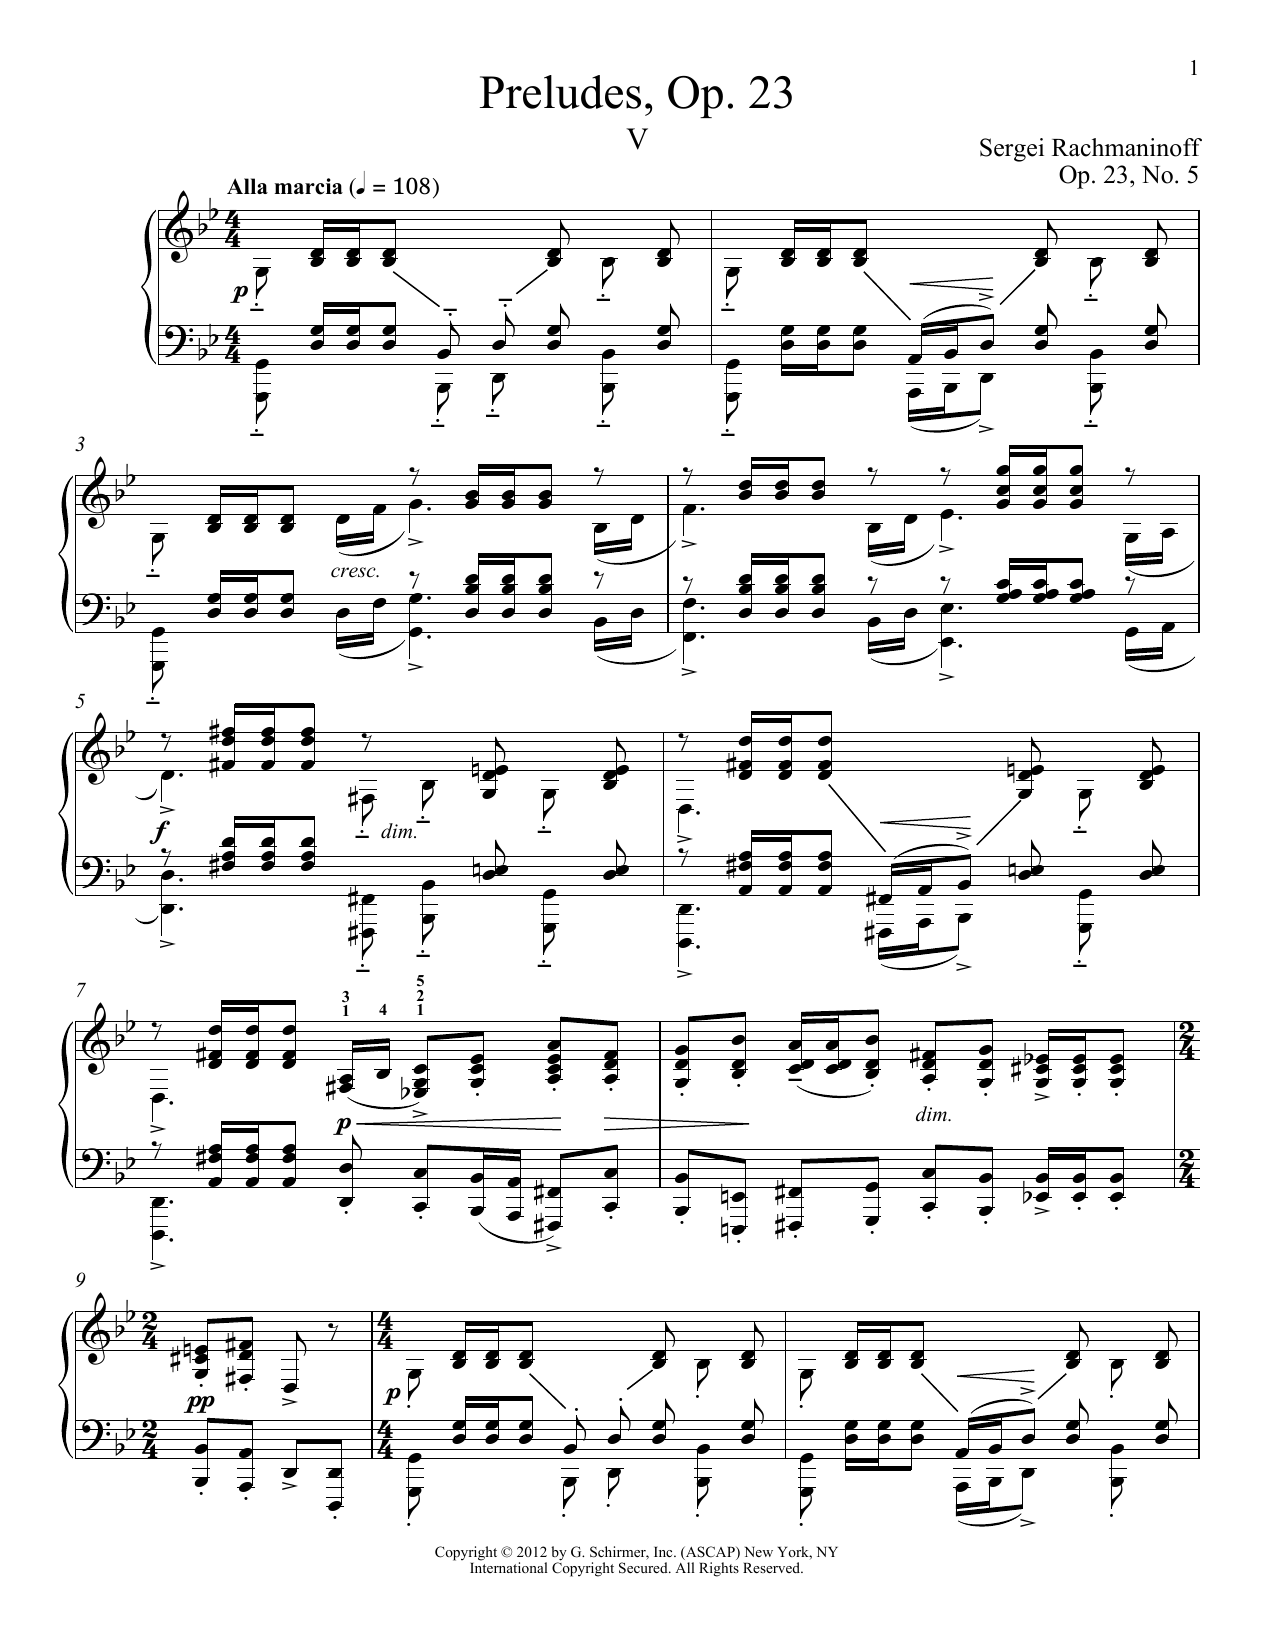 Prelude In G Minor, Op. 23, No. 5 (Piano Solo)